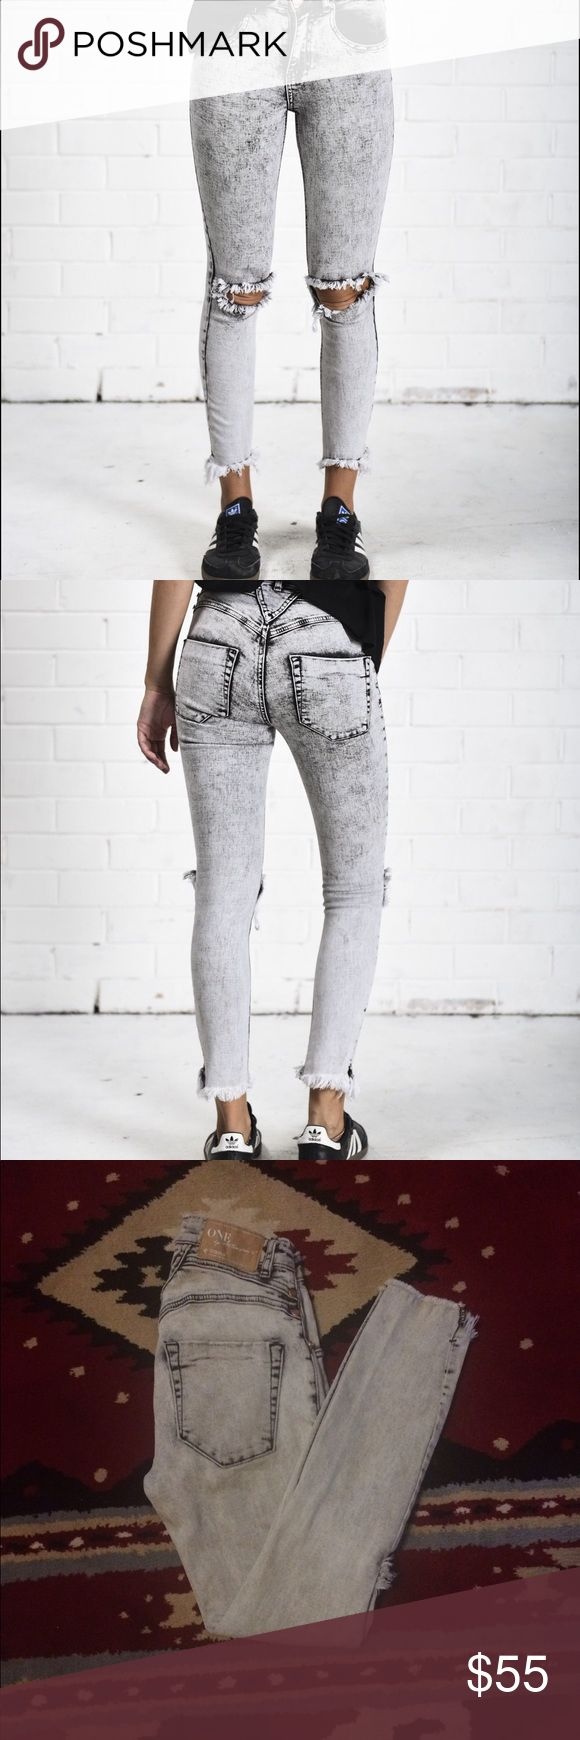 One Teaspoon Dixies Crop Skinny Jeans So Adorable fits true 24 high waisted cropped skinny jeans. One Teaspoon! I wish I looked good in high waist pants! One Teaspoon Pants Skinny